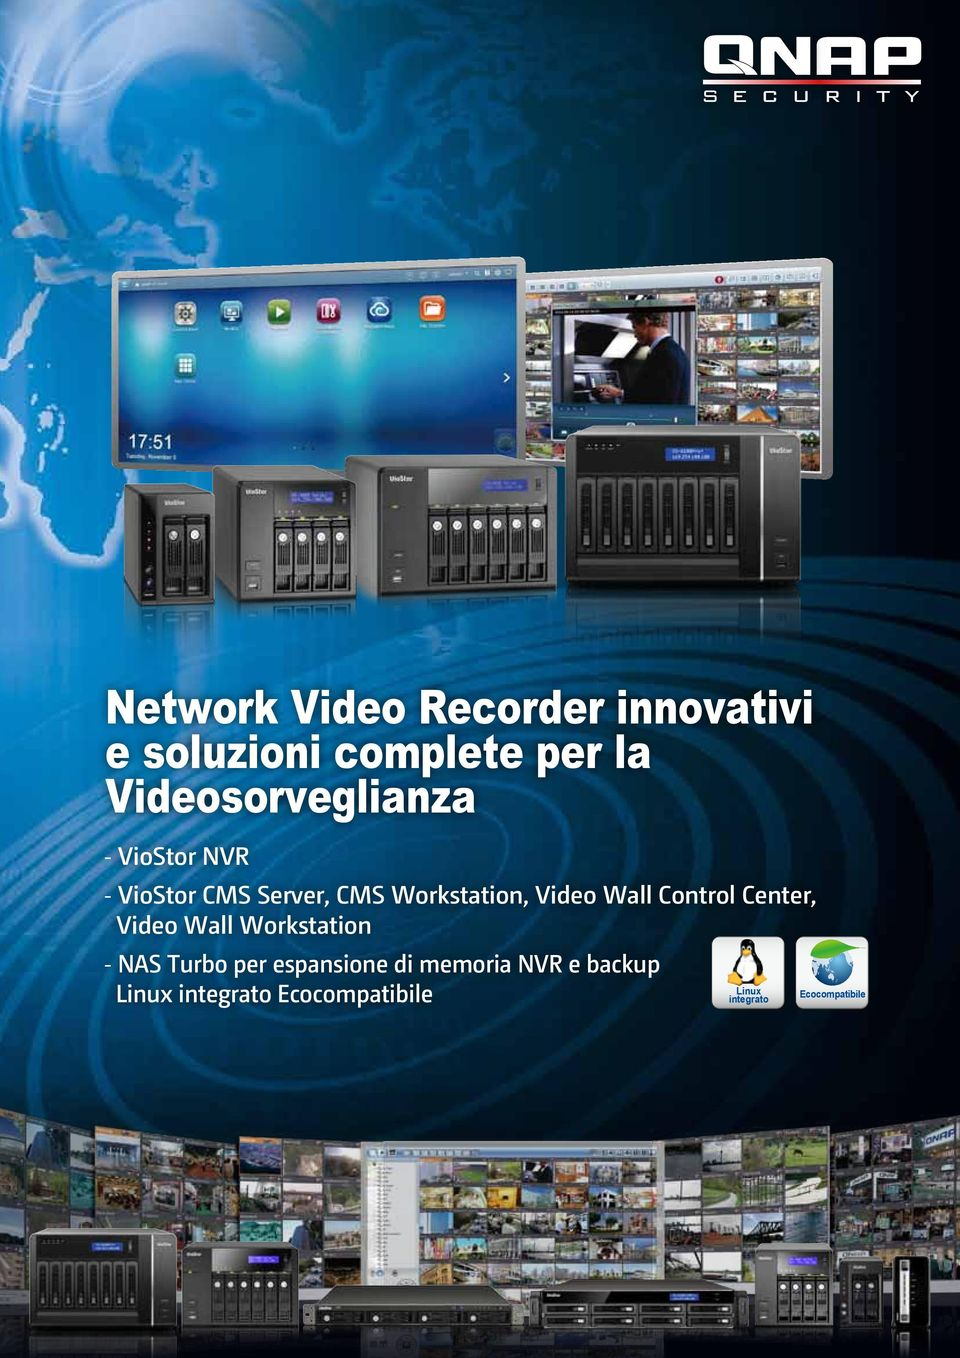 Video Wall Control Center, Video Wall Workstation -NAS Turbo per